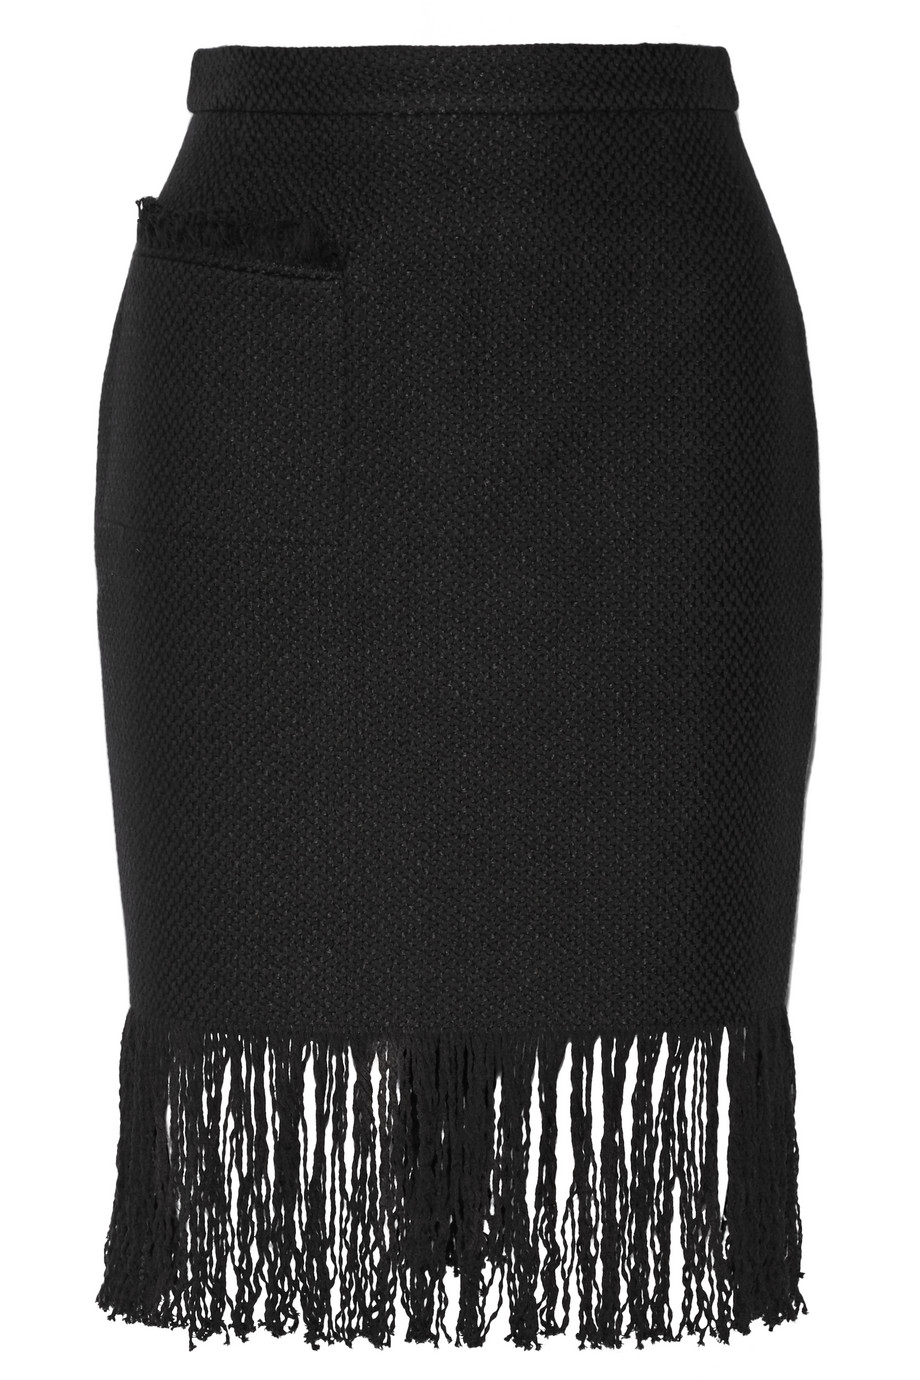 Adam Lippes Fringed Linen and Cotton-Blend Tweed Skirt, Black, Women's, Size: 10